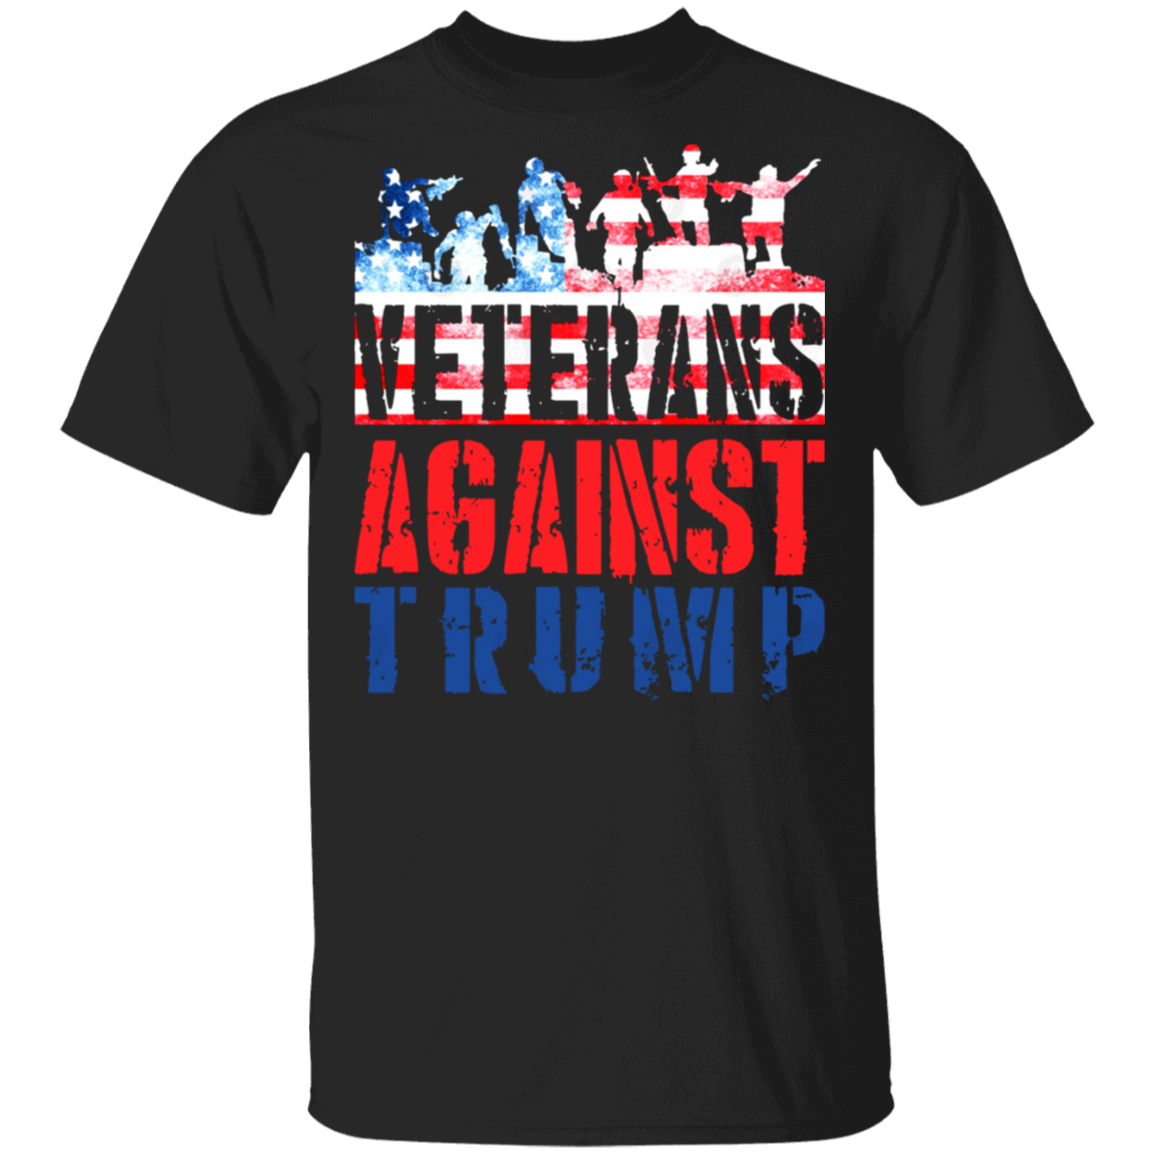 Veterans Against Trump Anti-Trump T-Shirt For Republicans Against Trump Biden 2020 Merch